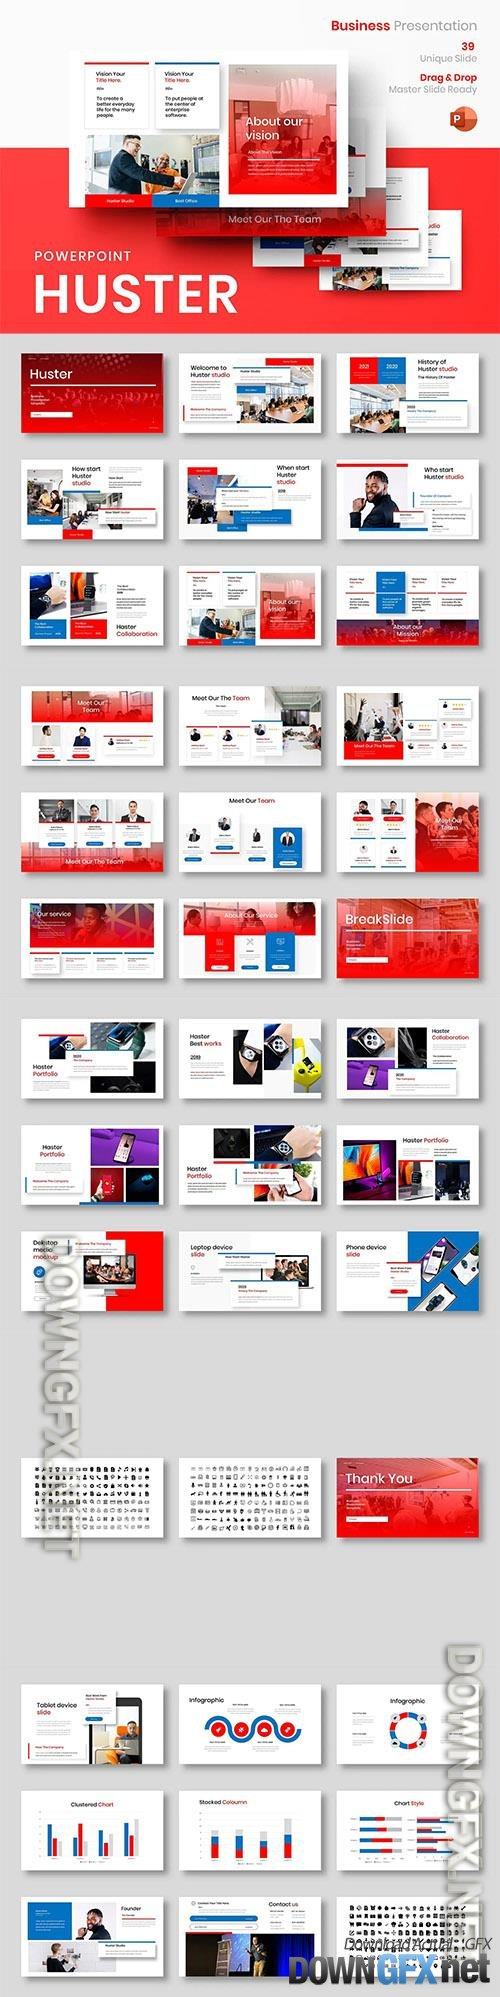 Huster - Business Powerpoint, Keynote and Google Slides Template